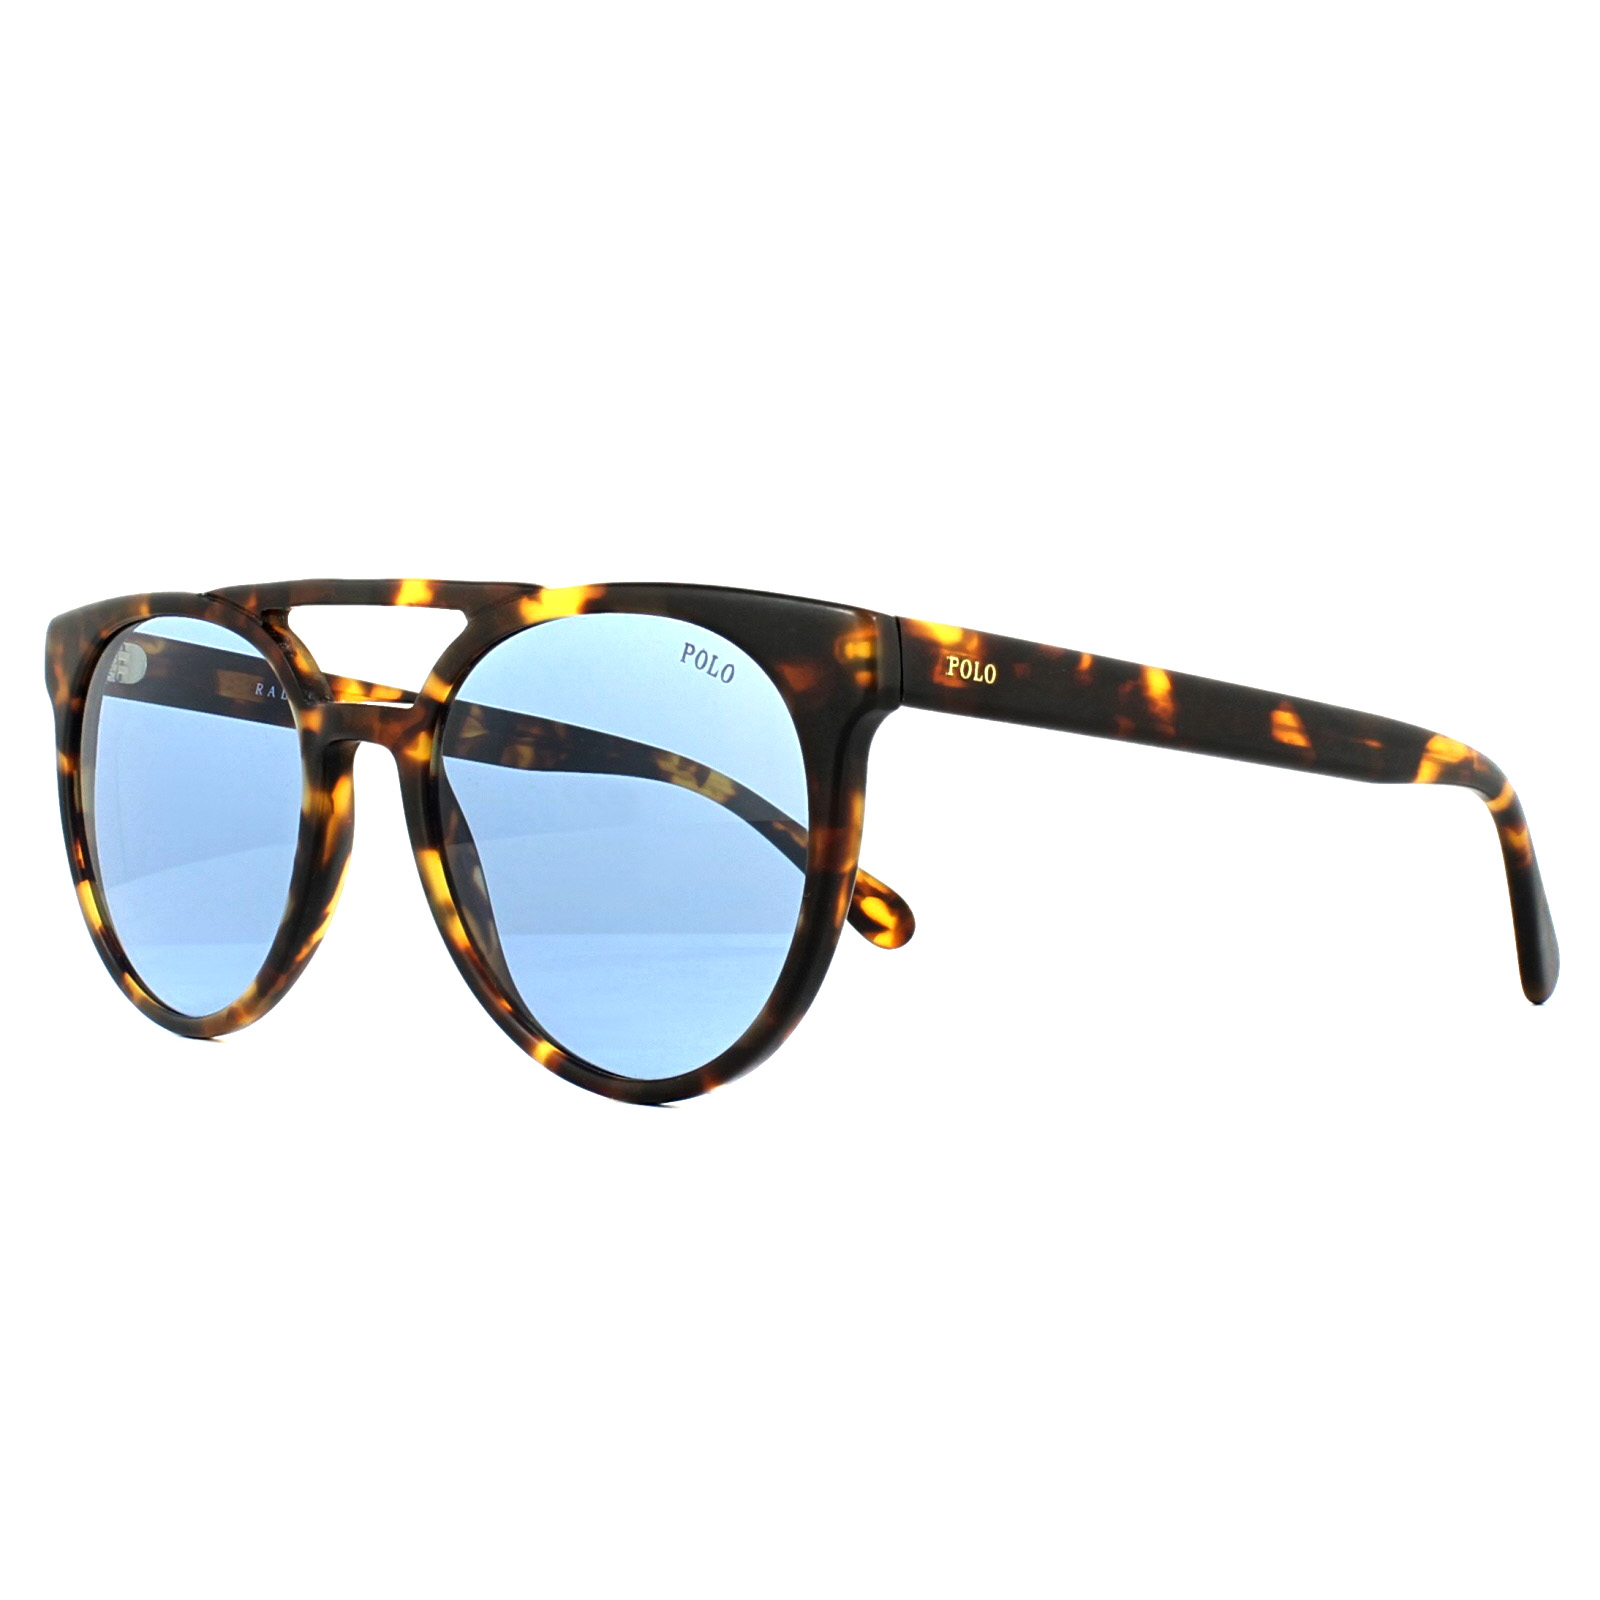 fab613f783 Sentinel Polo Ralph Lauren Sunglasses PH4134 530972 Vintage Tortoise Light  Blue